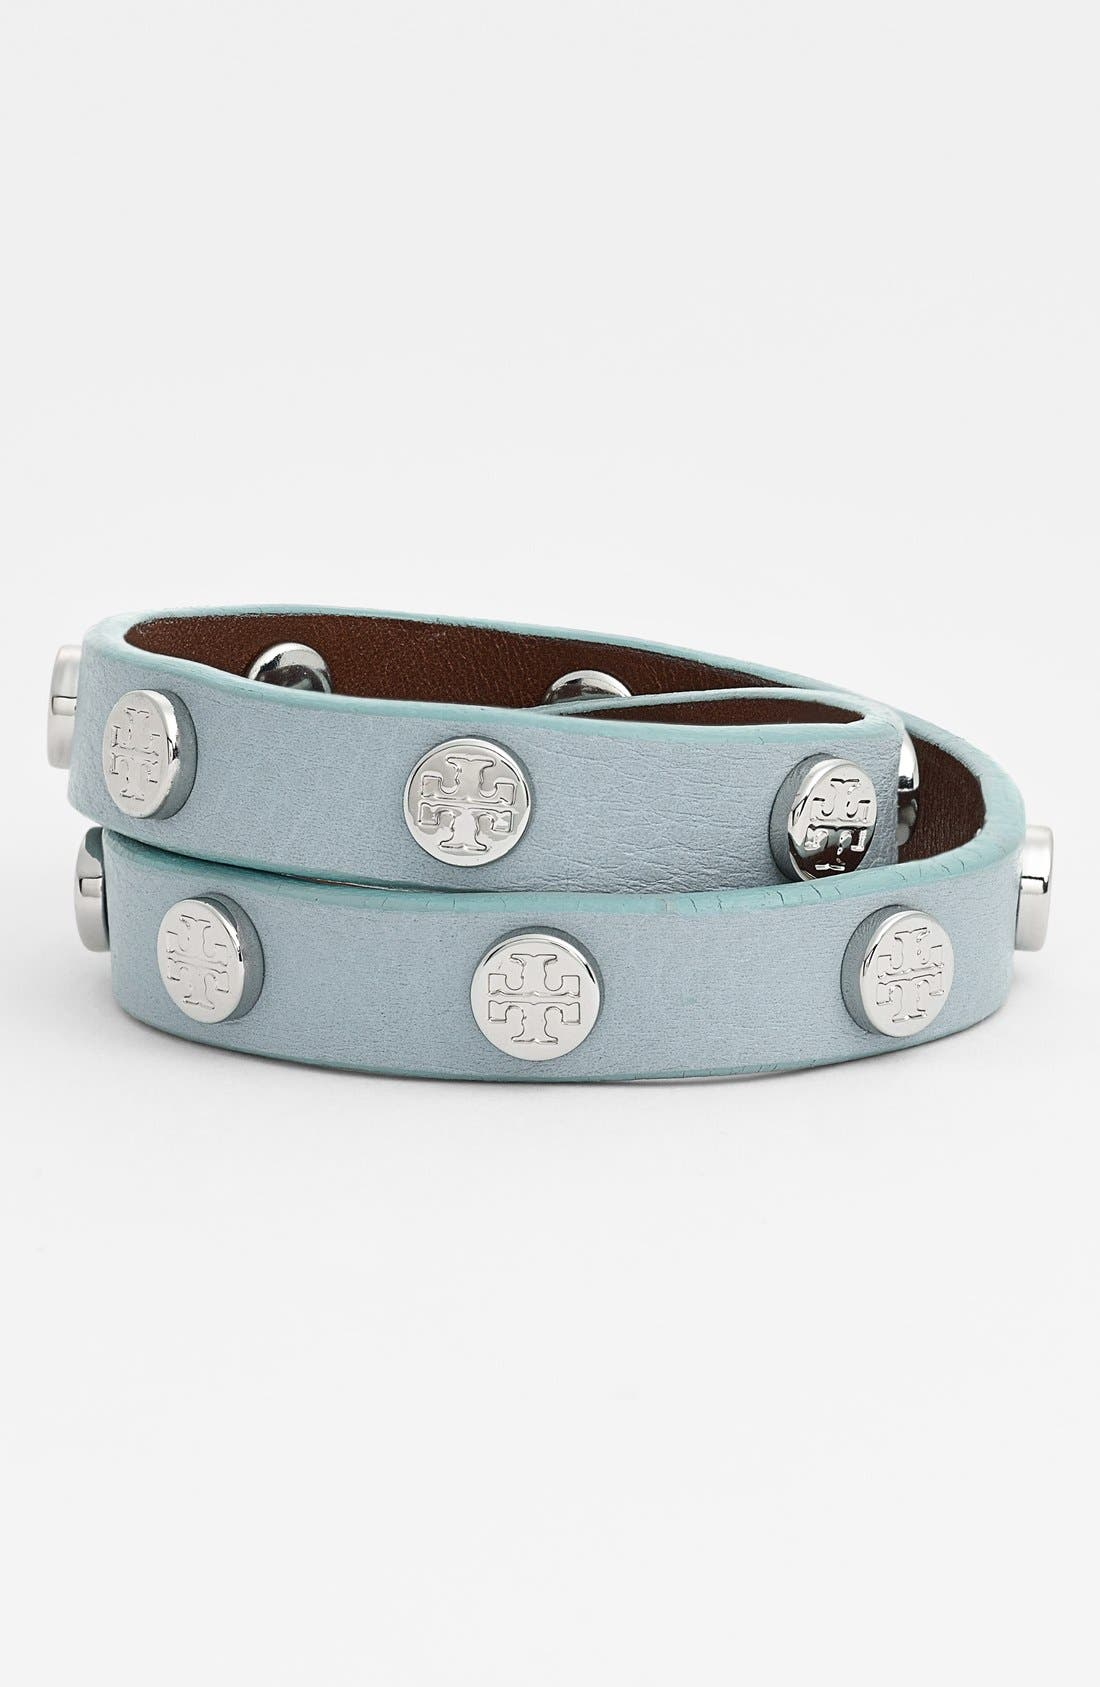 TORY BURCH, Logo Stud Leather Wrap Bracelet, Main thumbnail 1, color, 450